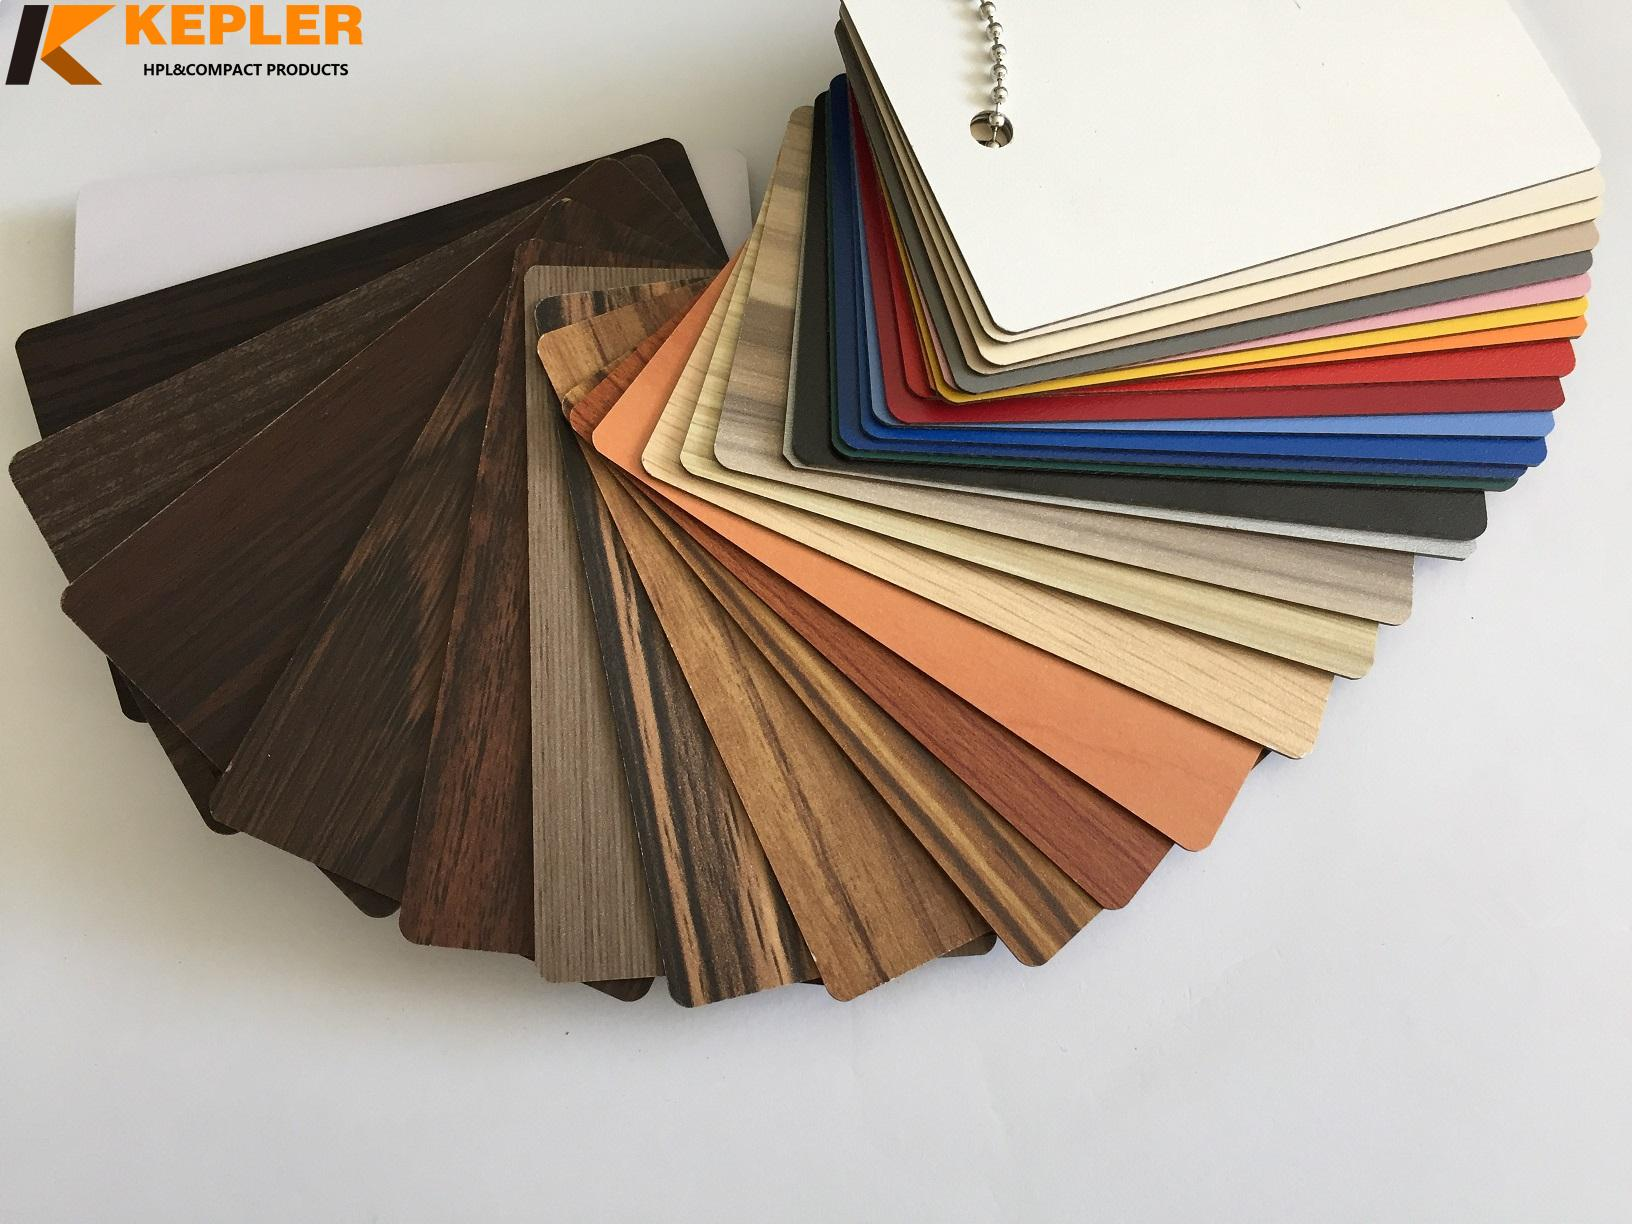 Kepler 12mm High Pressure Laminate Sheets Phenolic Compact Hpl Panel Compact Board